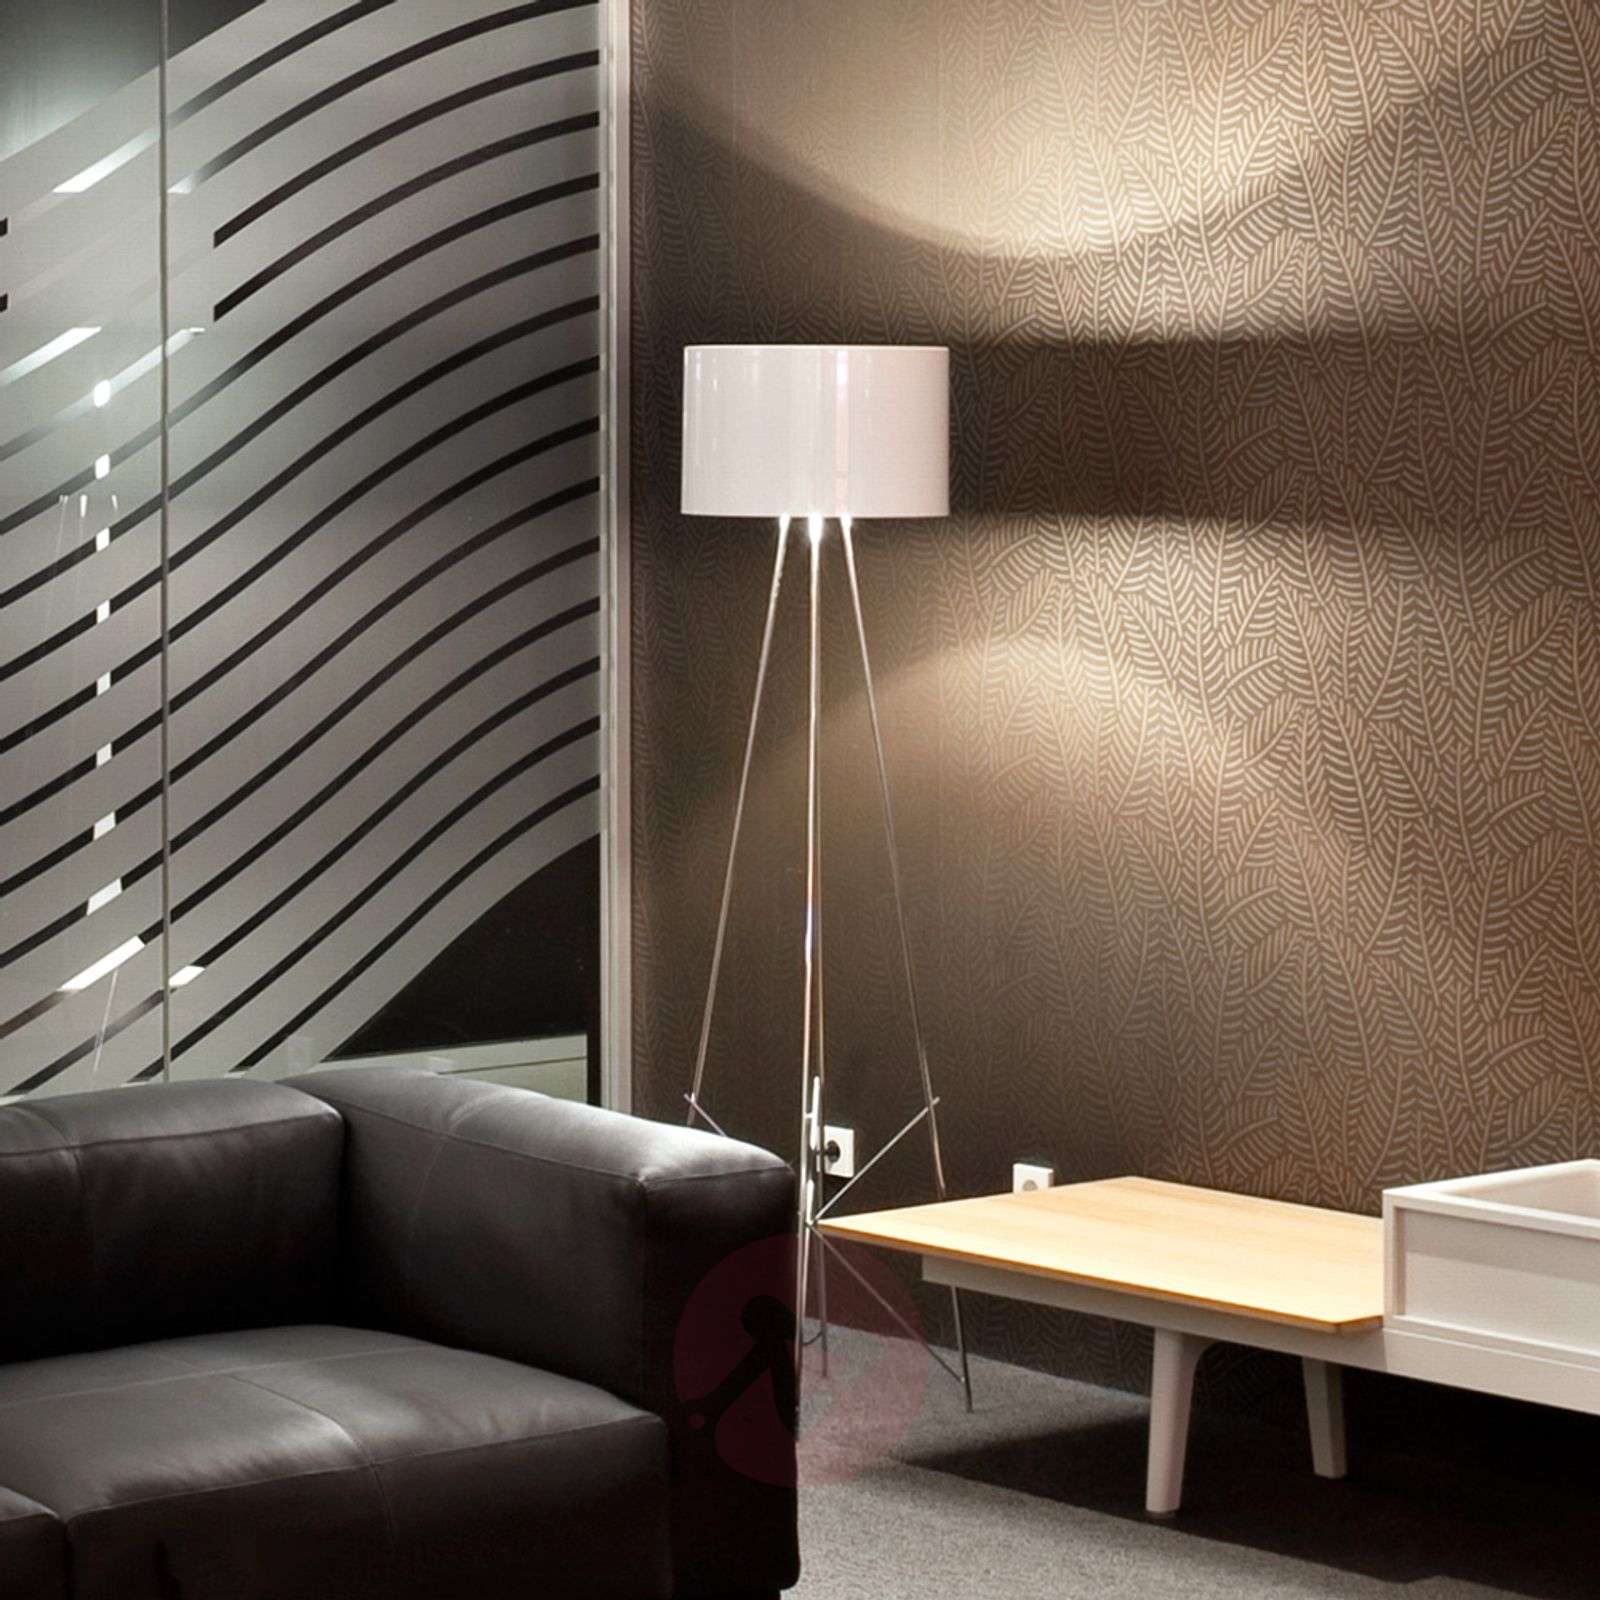 Ray f2 designer floor lamp with dimmer lights ray f2 designer floor lamp with dimmer 3510031x 01 aloadofball Gallery